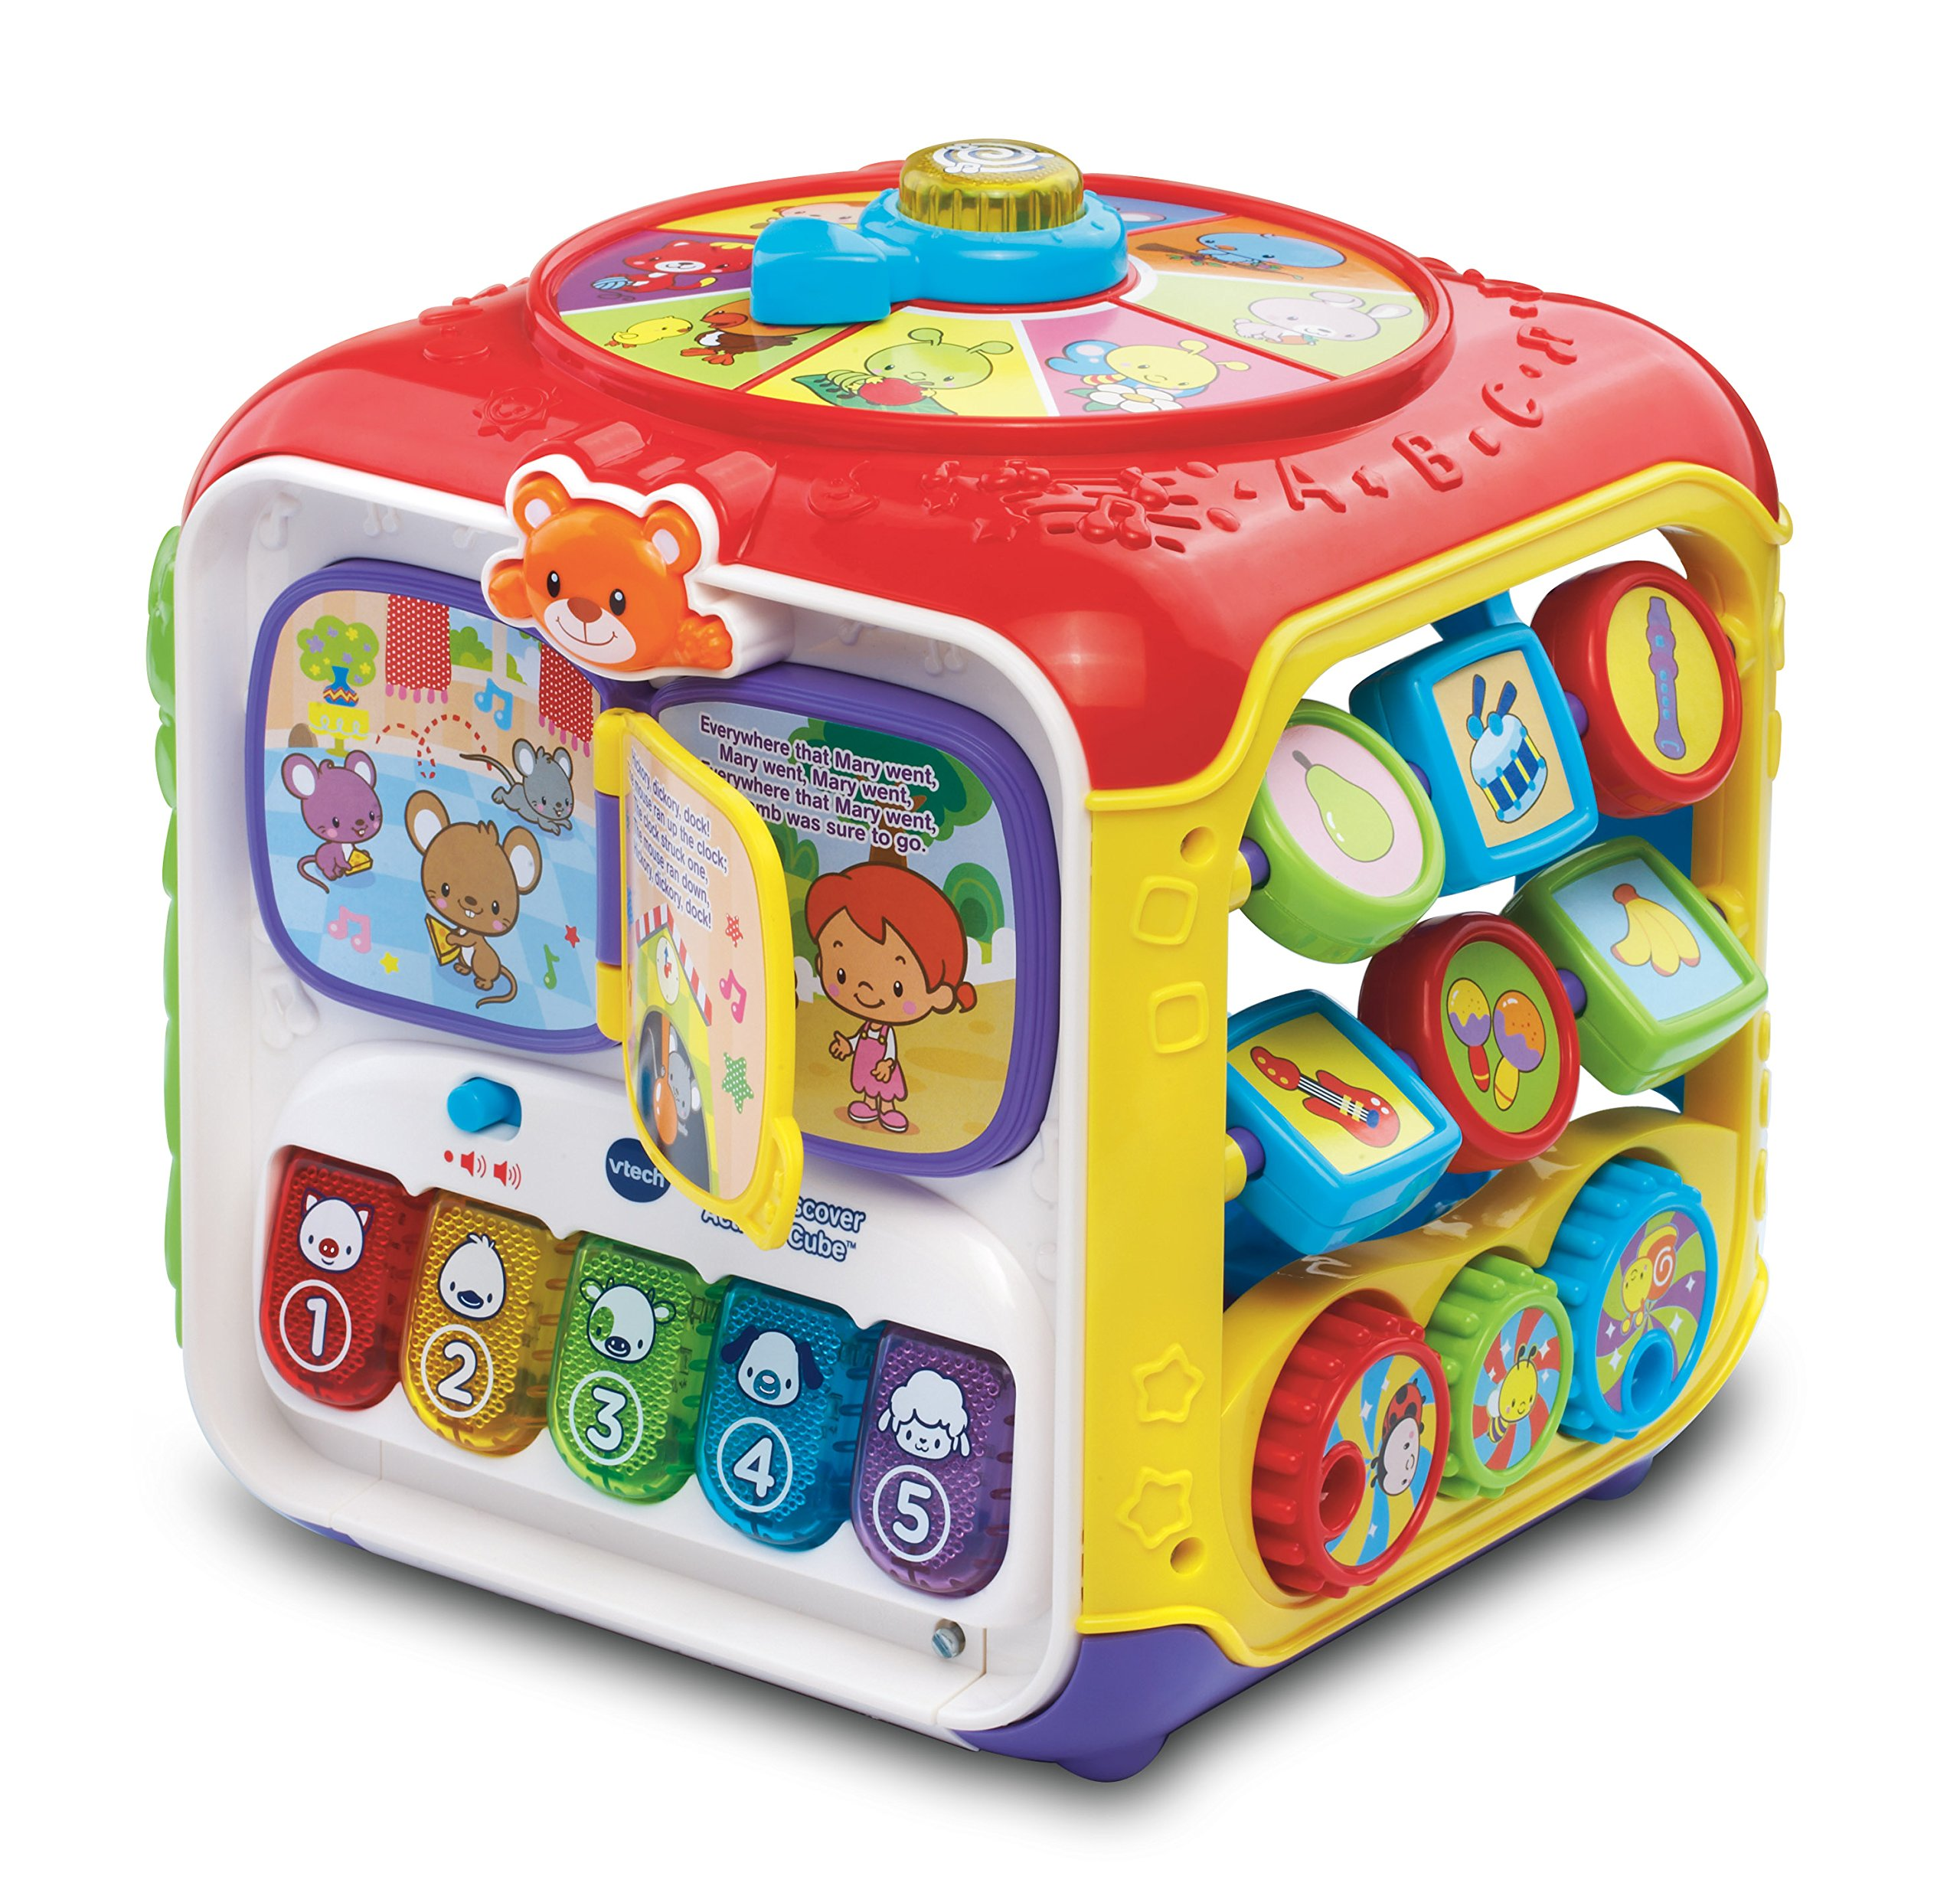 VTech Sort and Discover Activity Cube, Great Gift For Kids, Toddlers, Toy for Boys and Girls, Ages 1, 2, 3